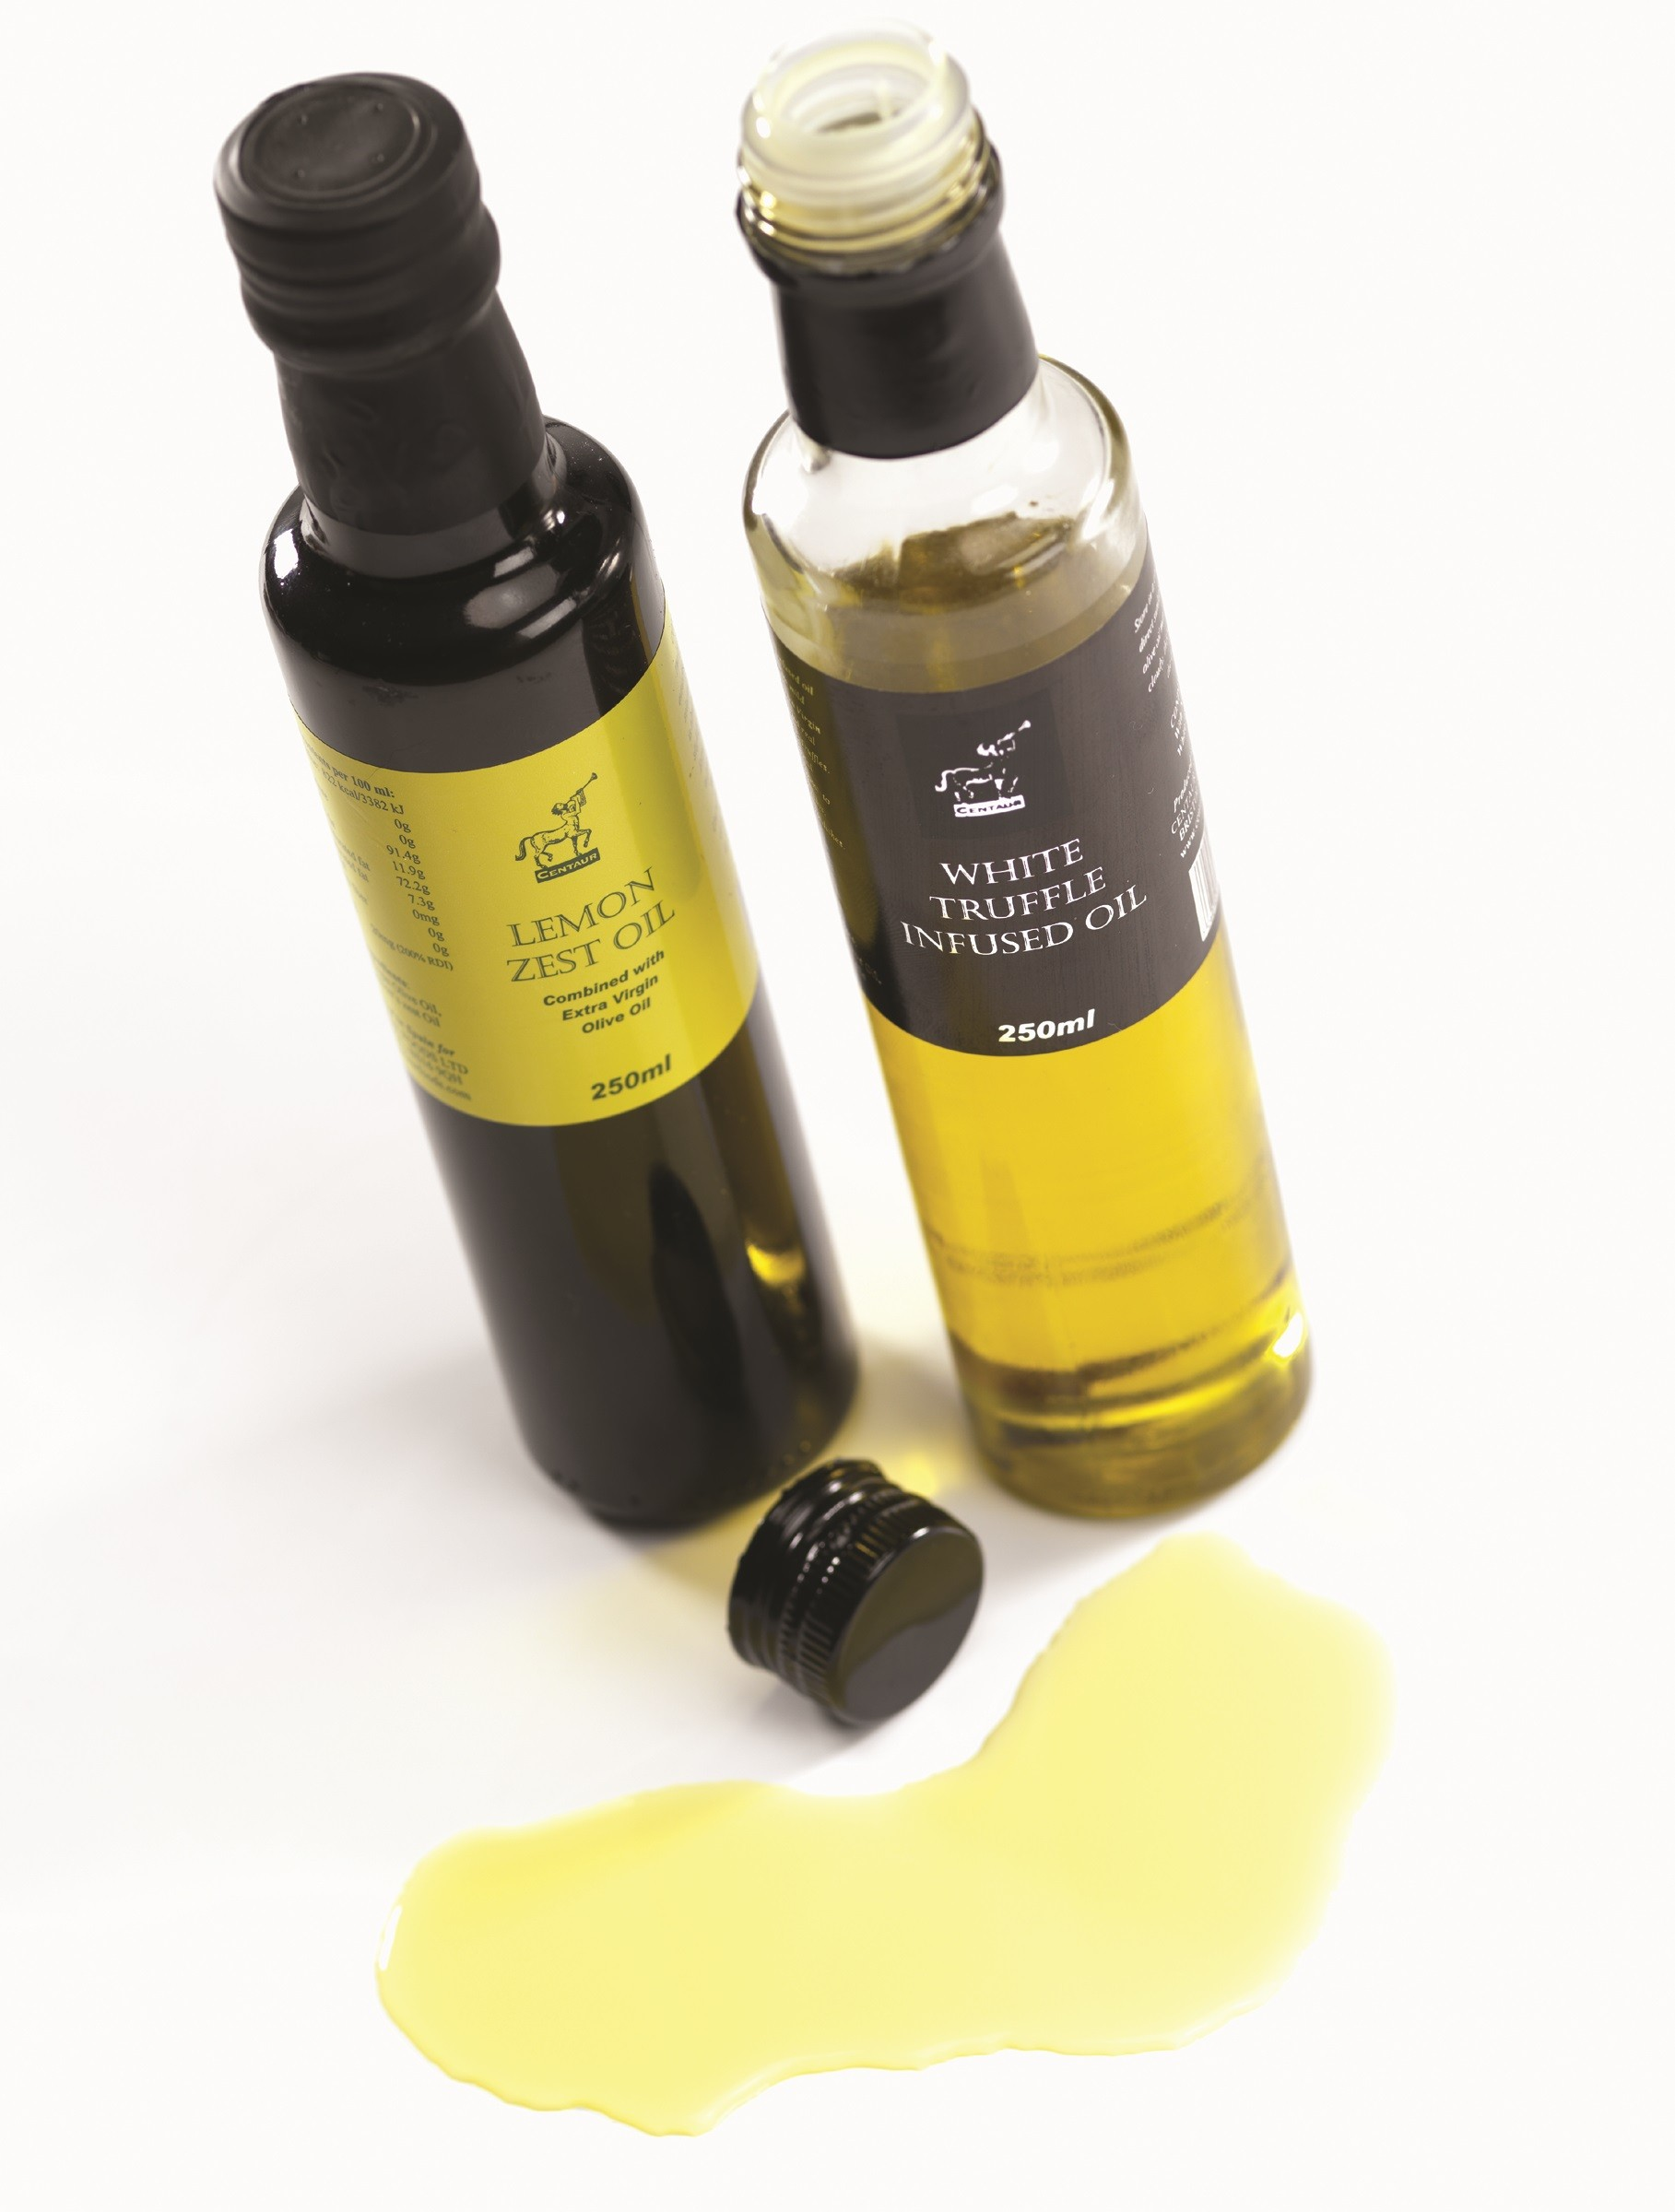 White Truffle Infused Oil